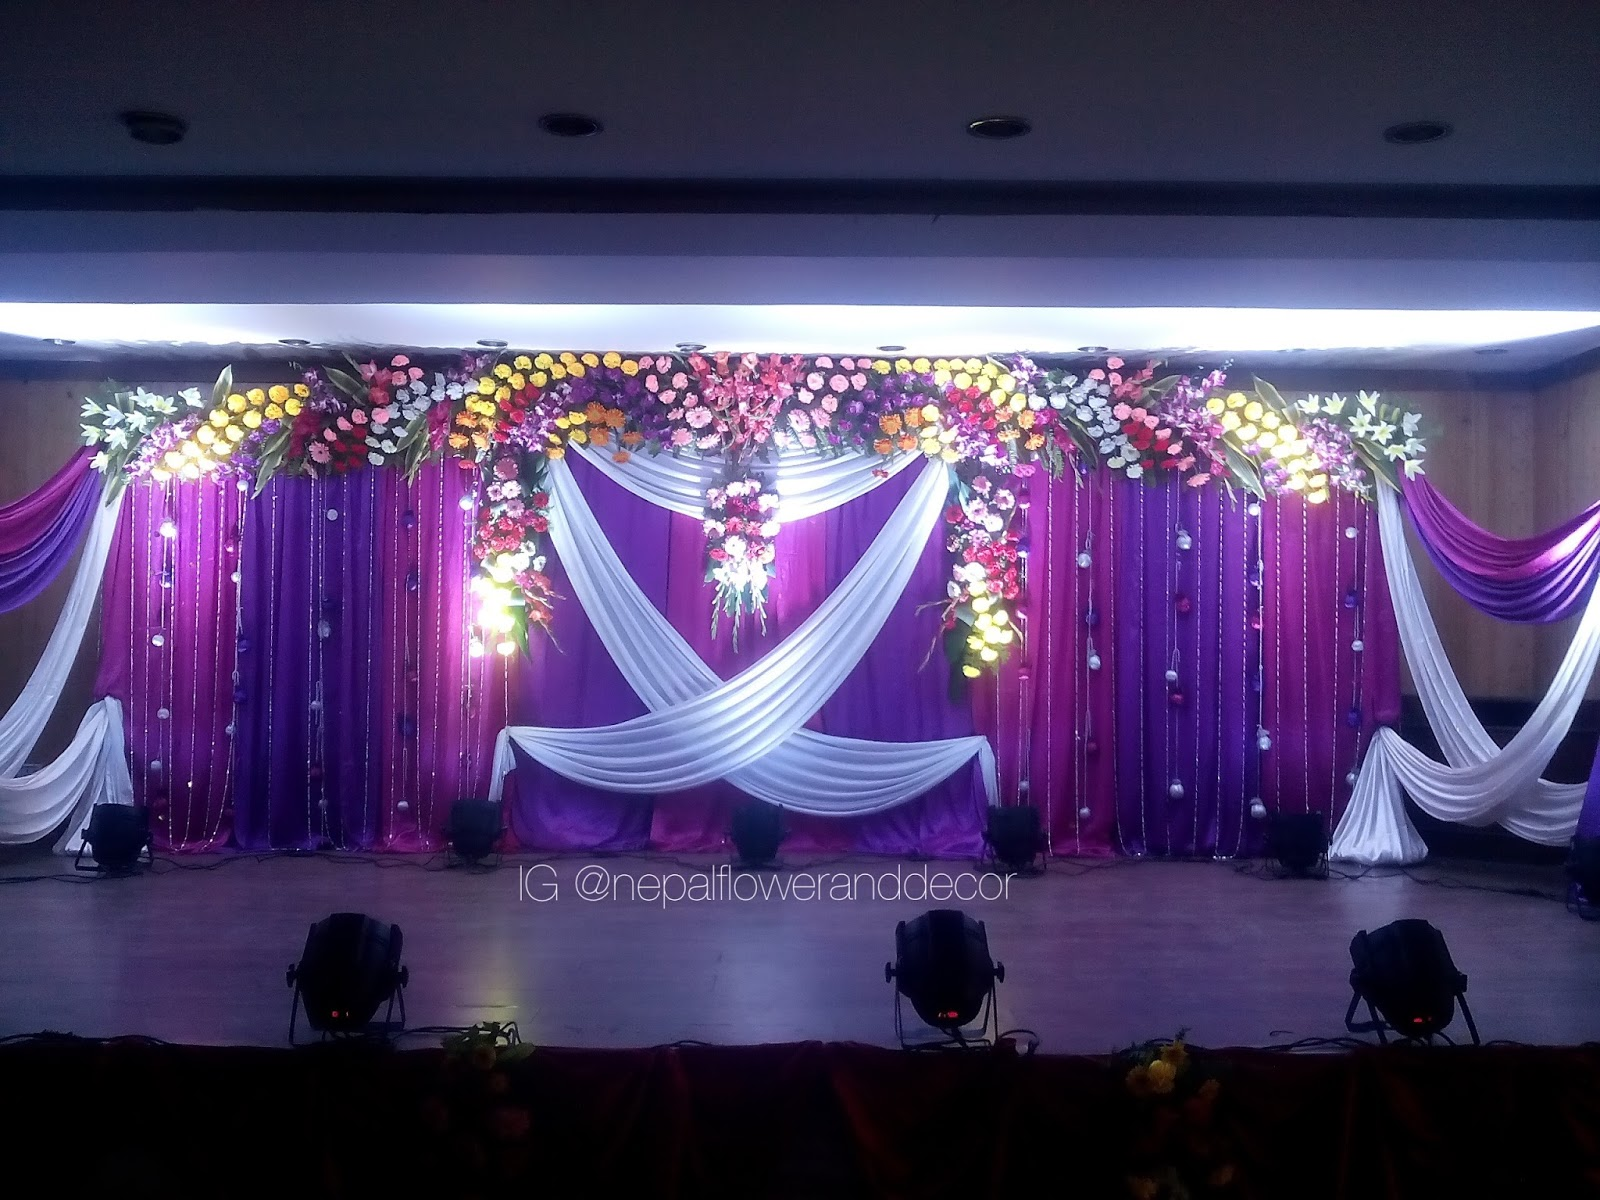 Nepal flower and decor wedding decoration stage decoration junglespirit Image collections